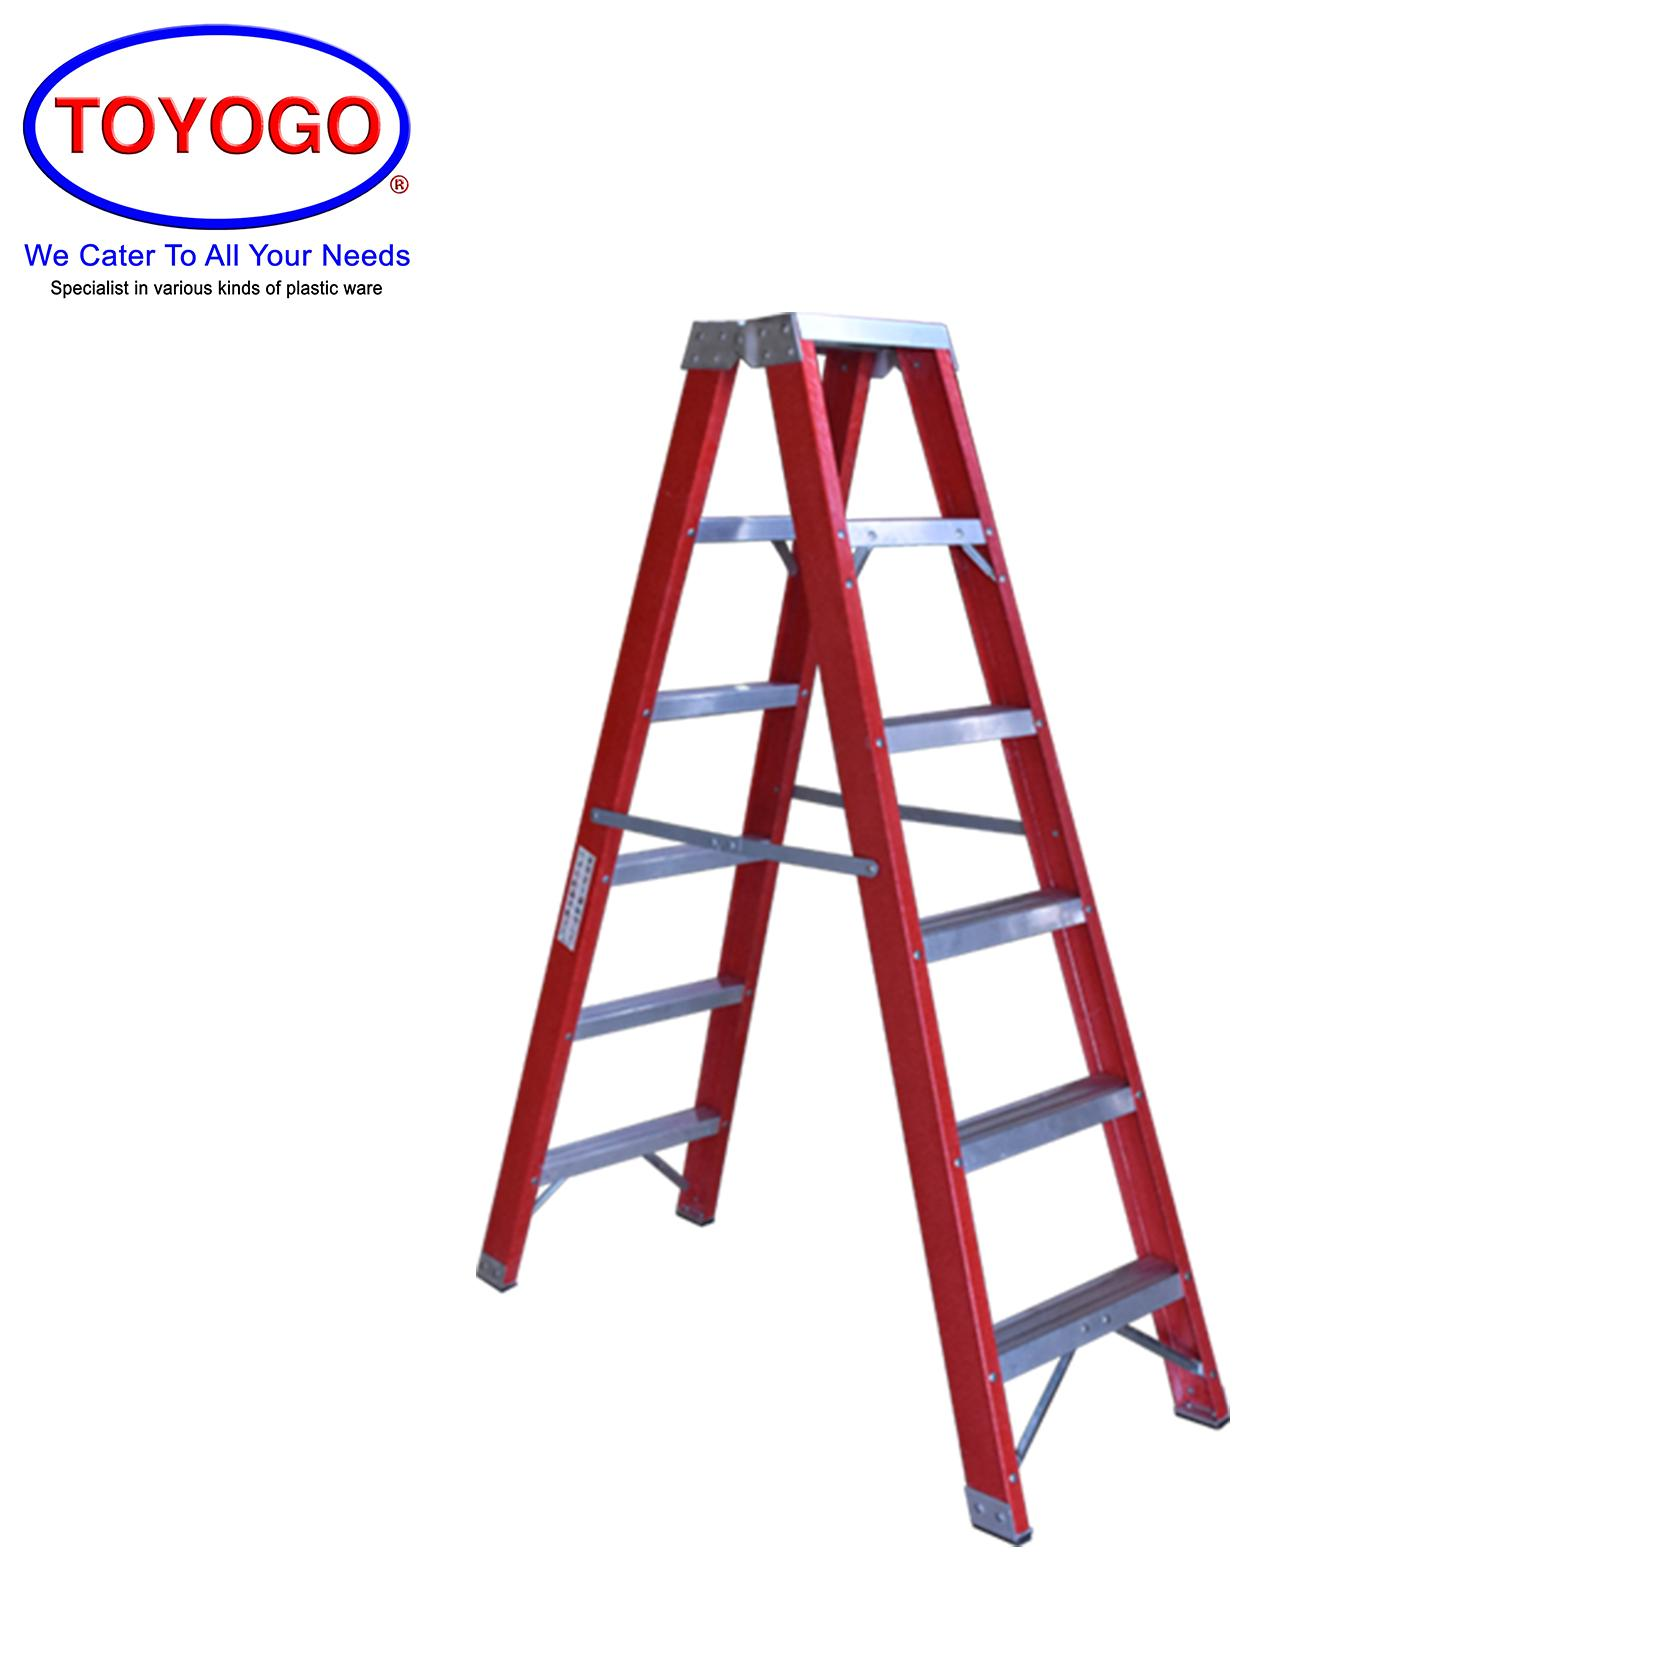 Toyogo Fiber 2 Side Ladder (6 Step) (HFH5526) W21